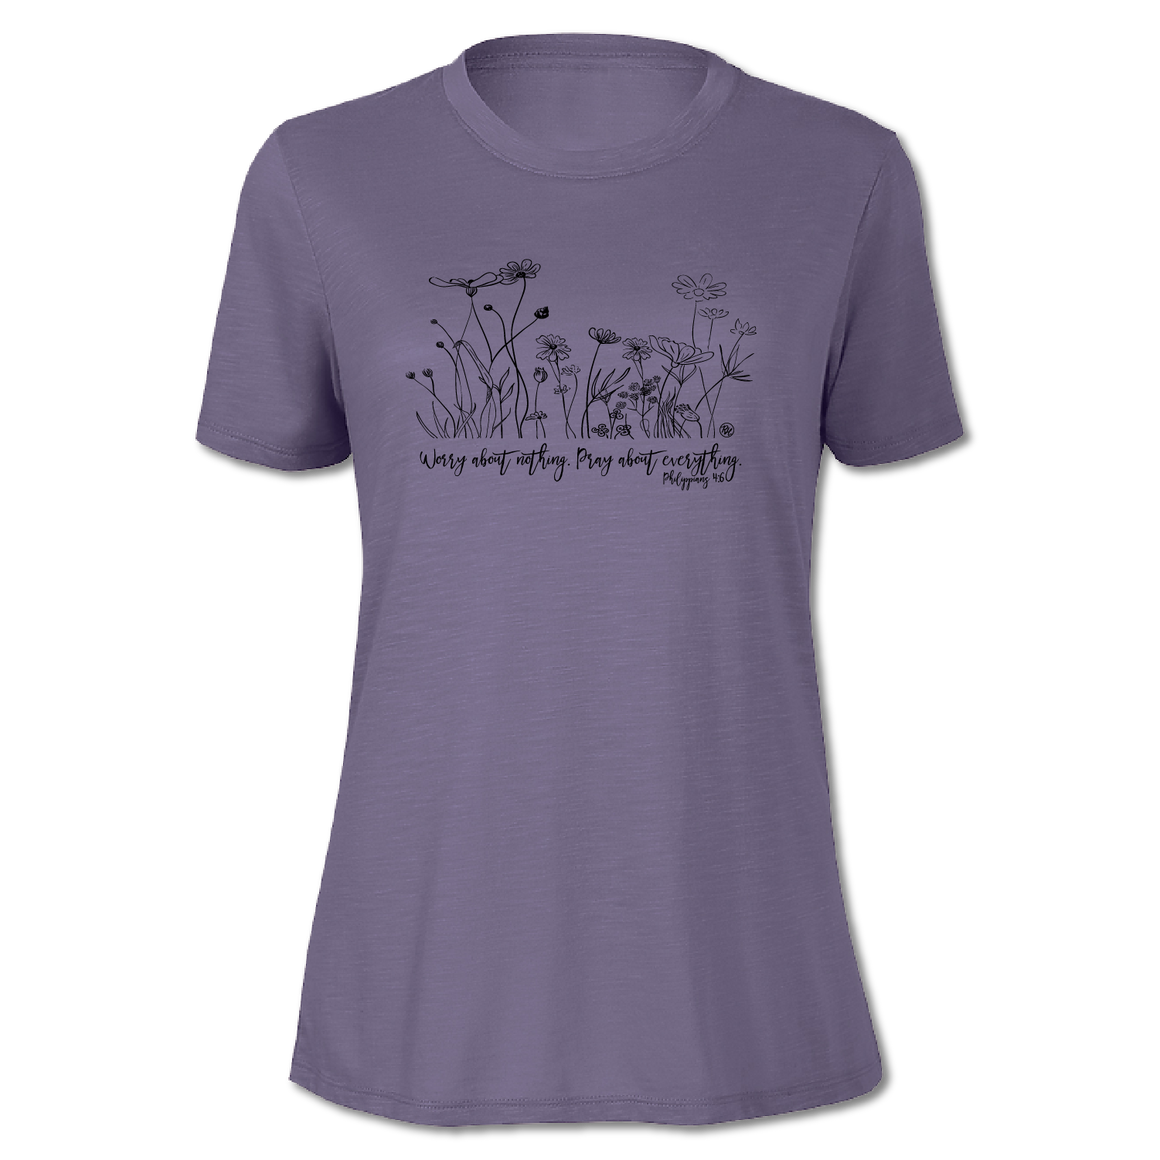 Worry About Nothing - Purple - Woman's Slub Tee